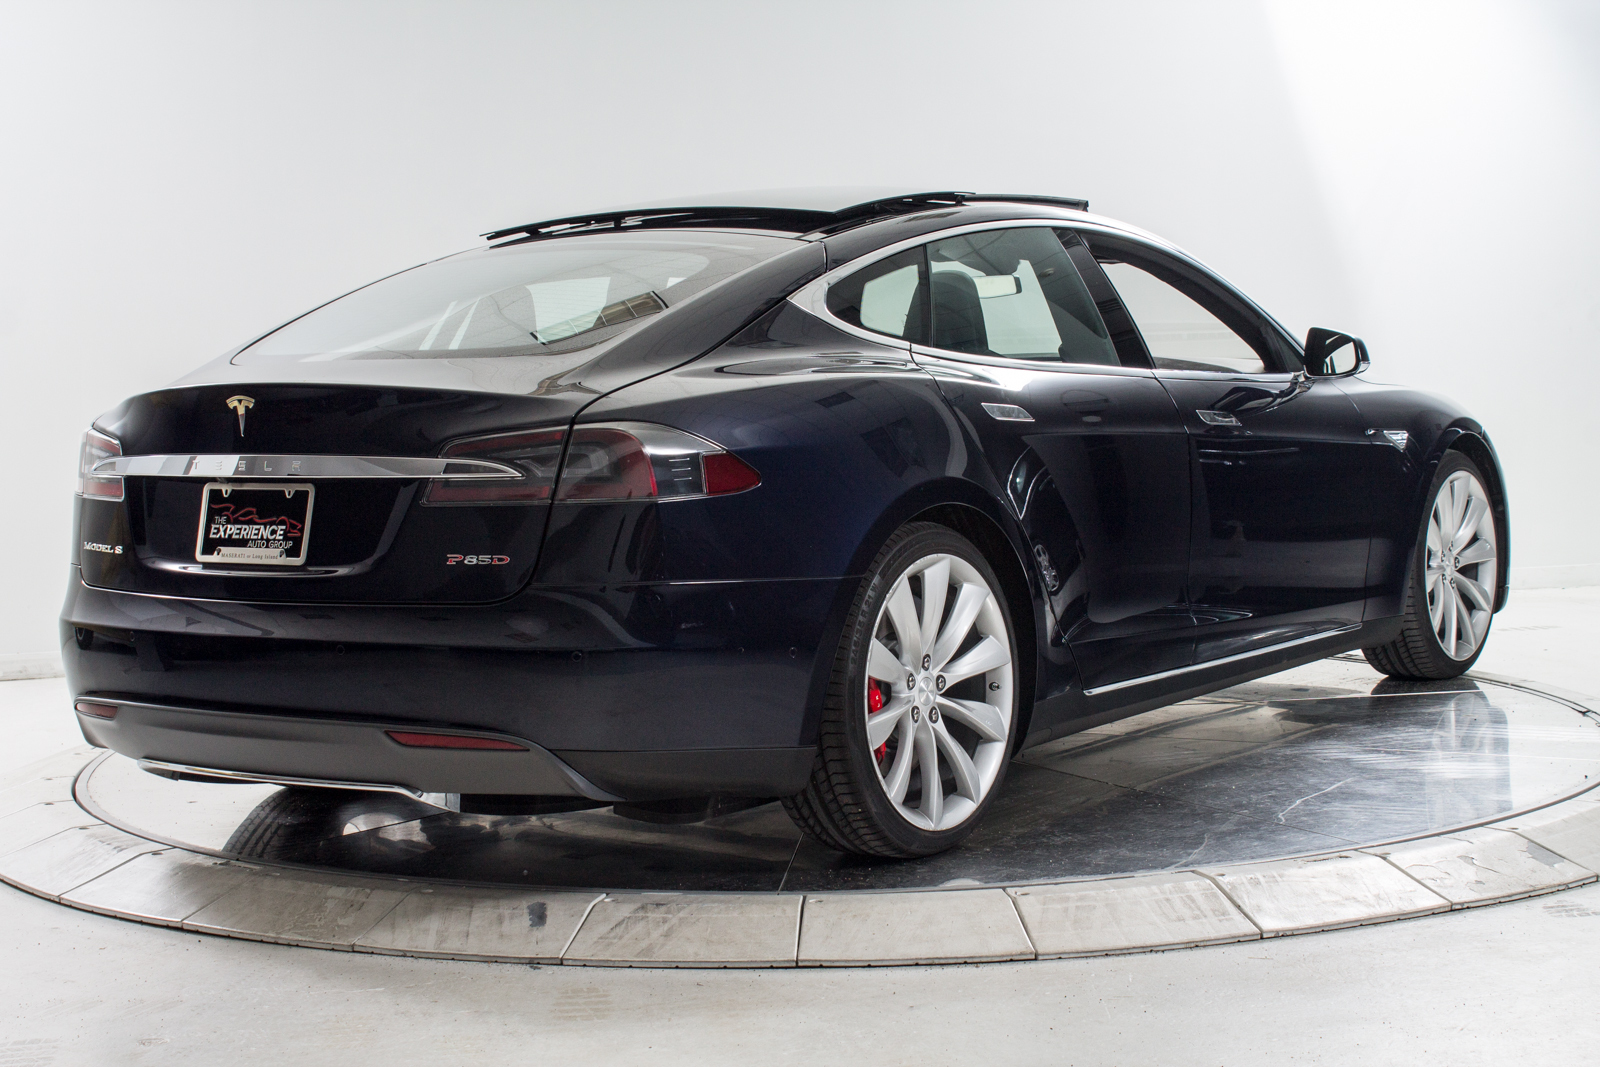 2015 tesla model s p85d technical details buy aircrafts. Black Bedroom Furniture Sets. Home Design Ideas